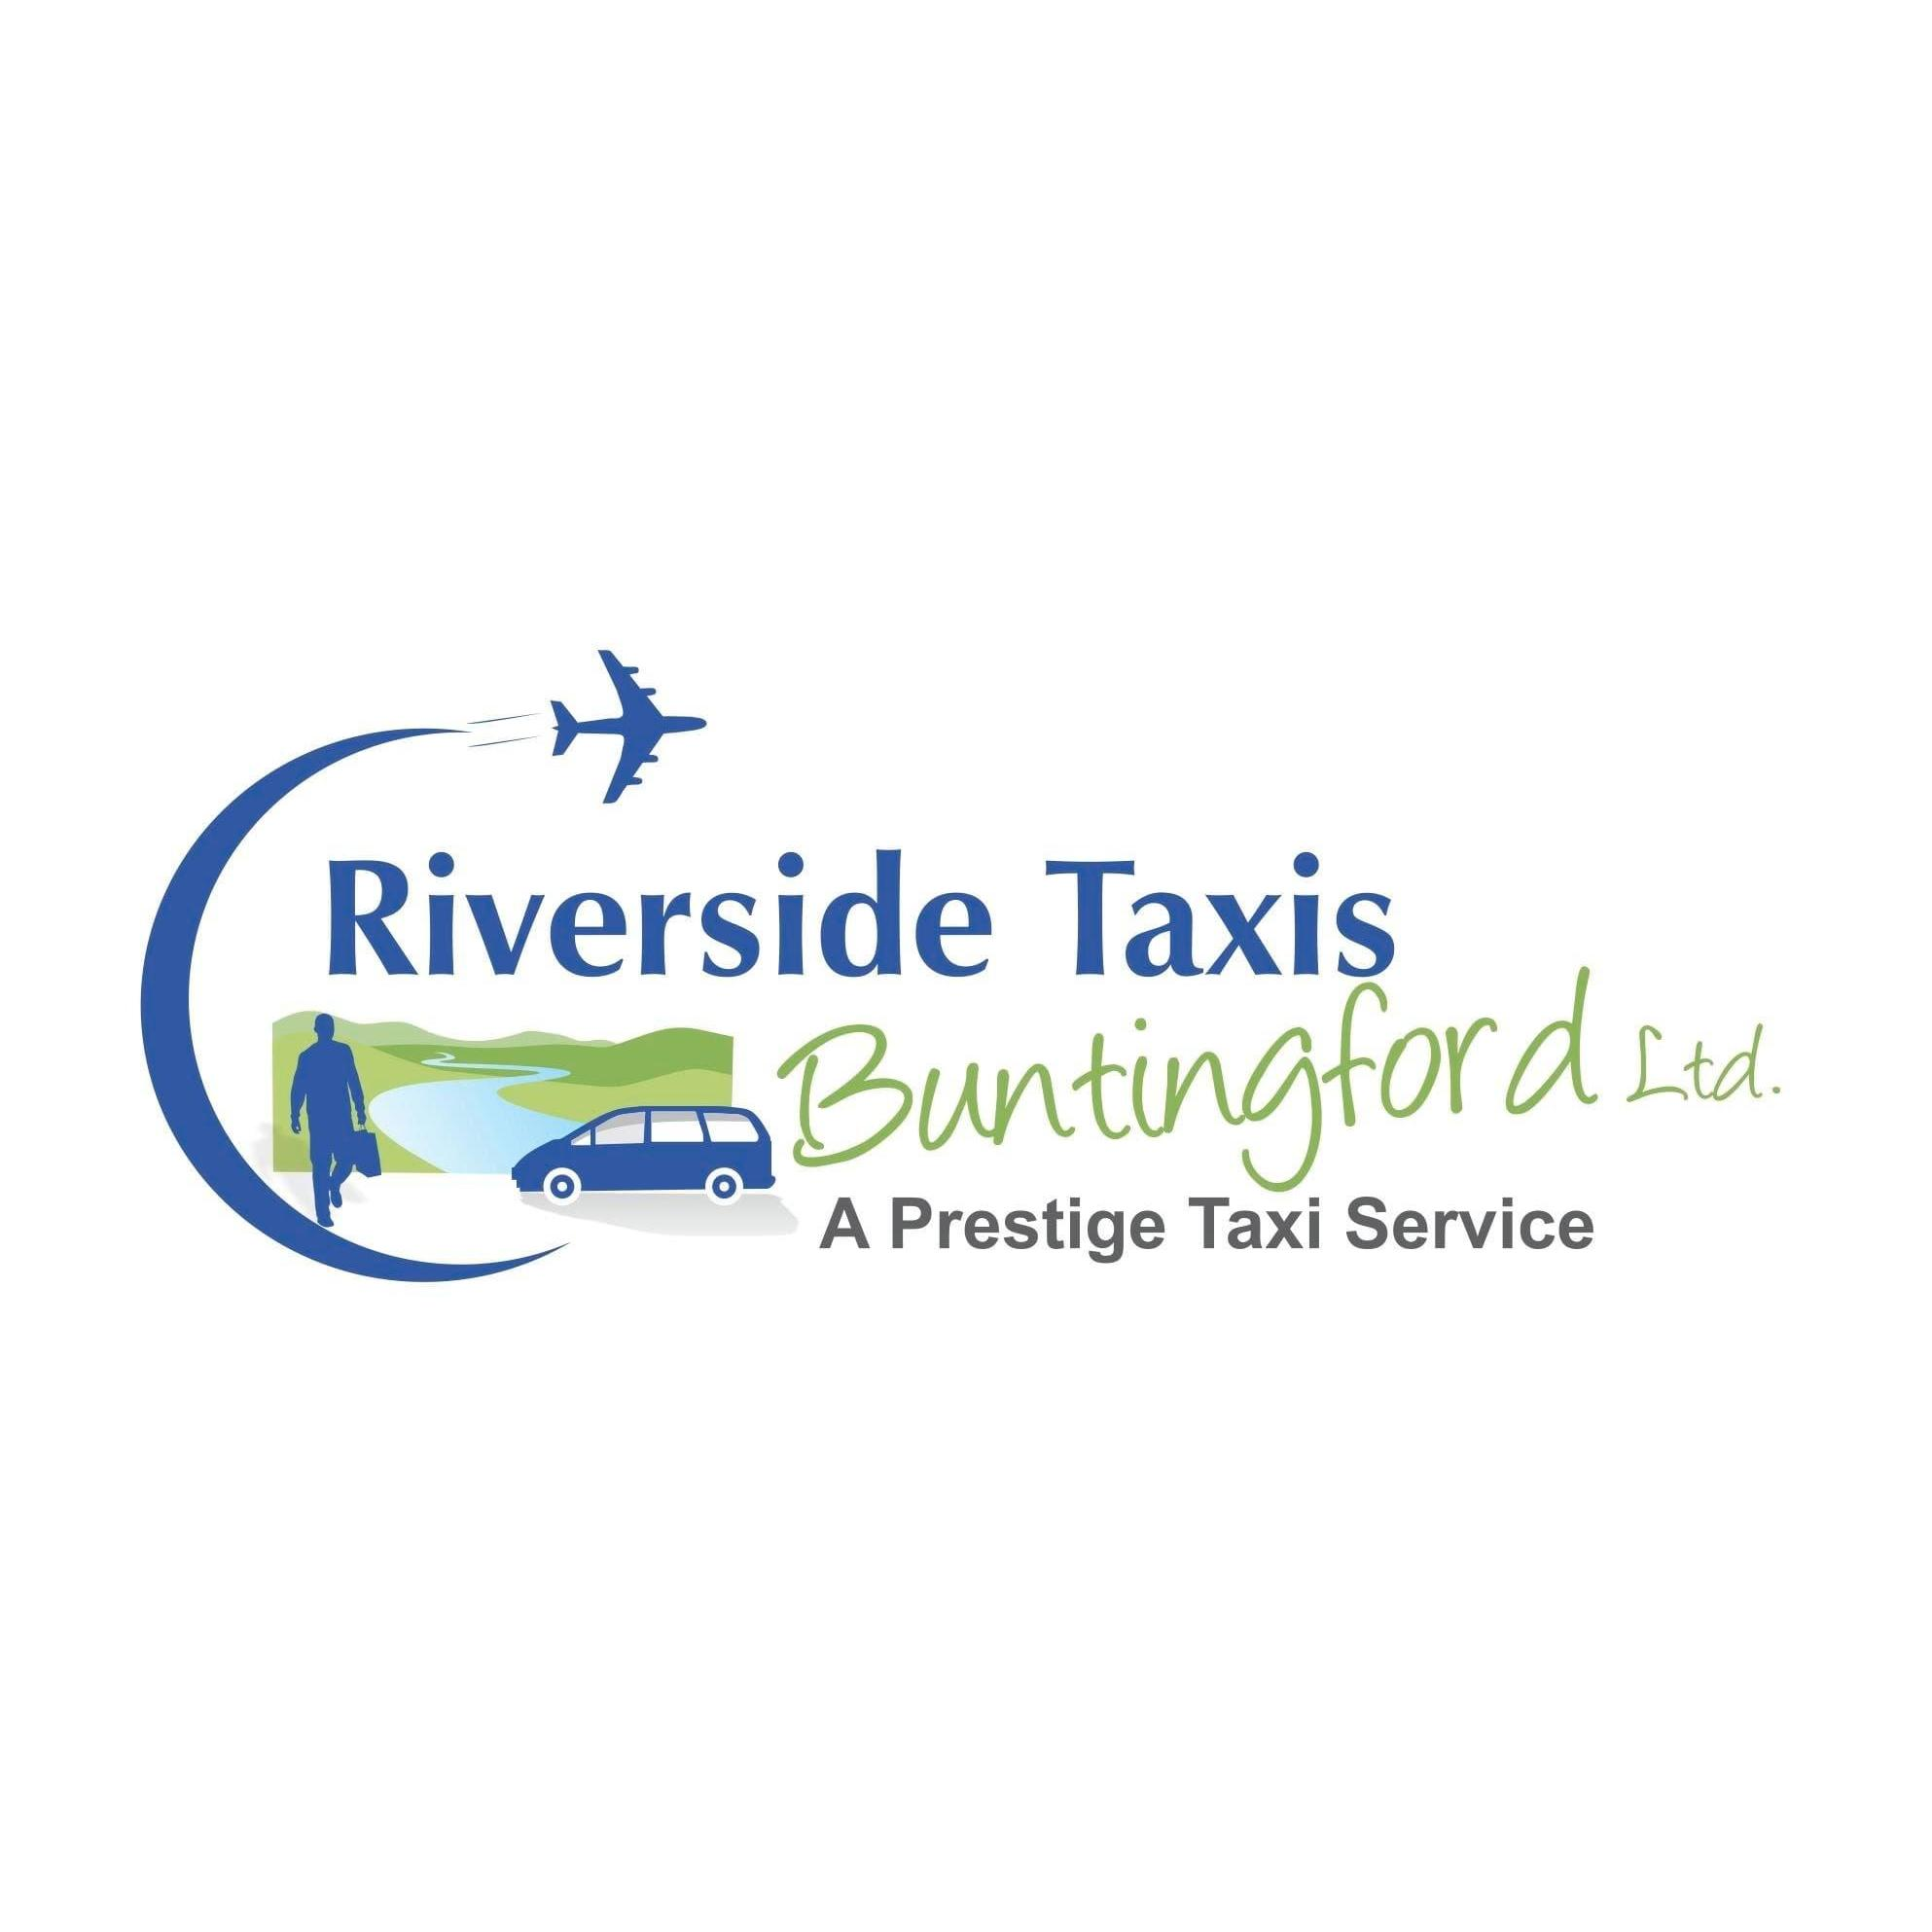 Riverside Taxis Buntingford Ltd - Buntingford, Hertfordshire SG9 9JS - 01763 434343 | ShowMeLocal.com